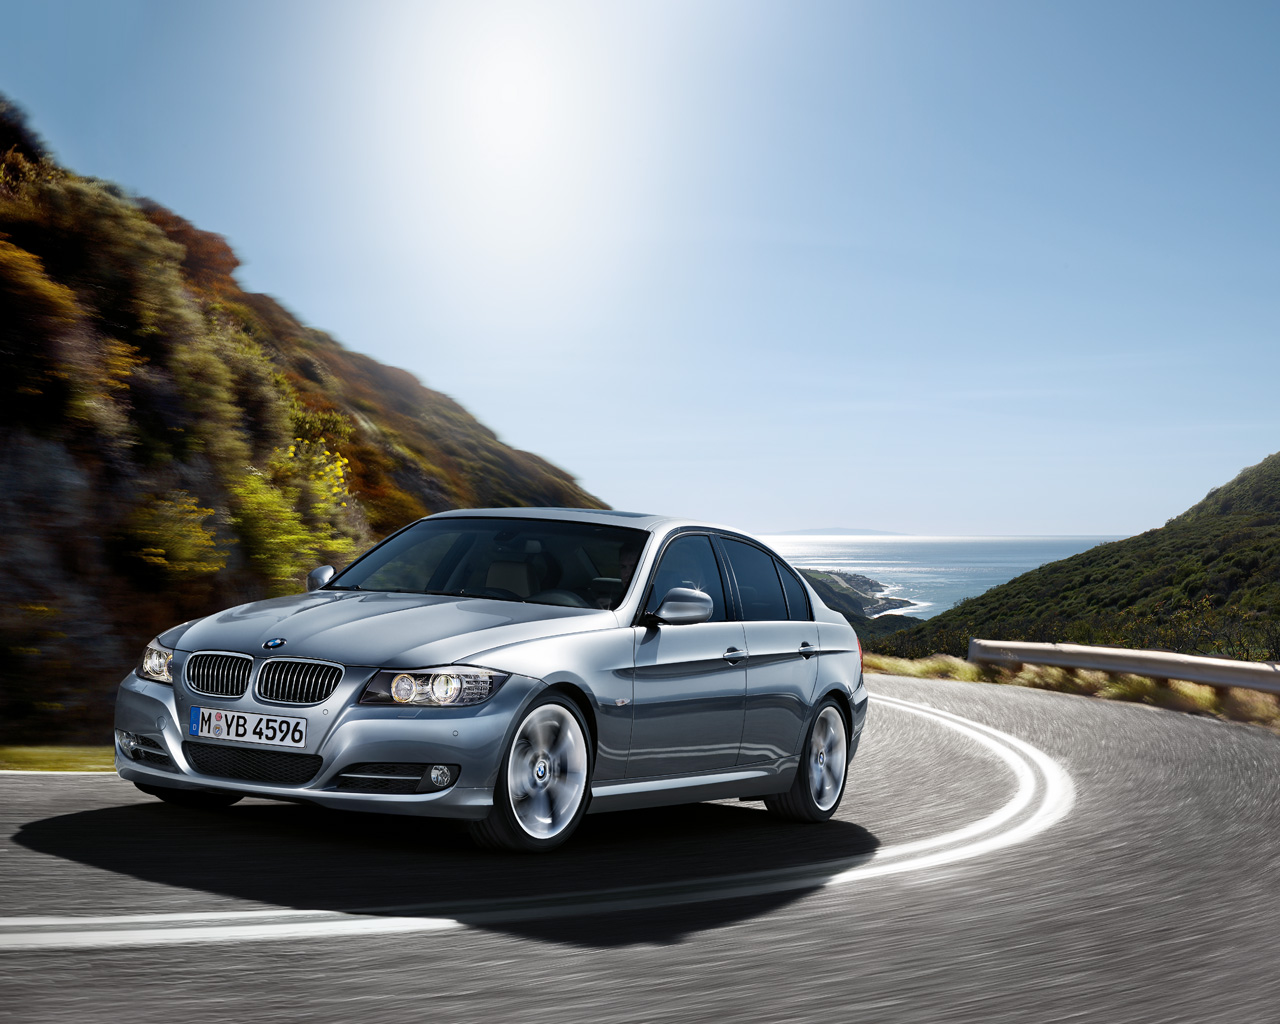 bmw 3 wallpaper |cars wallpapers and pictures car images,car pics